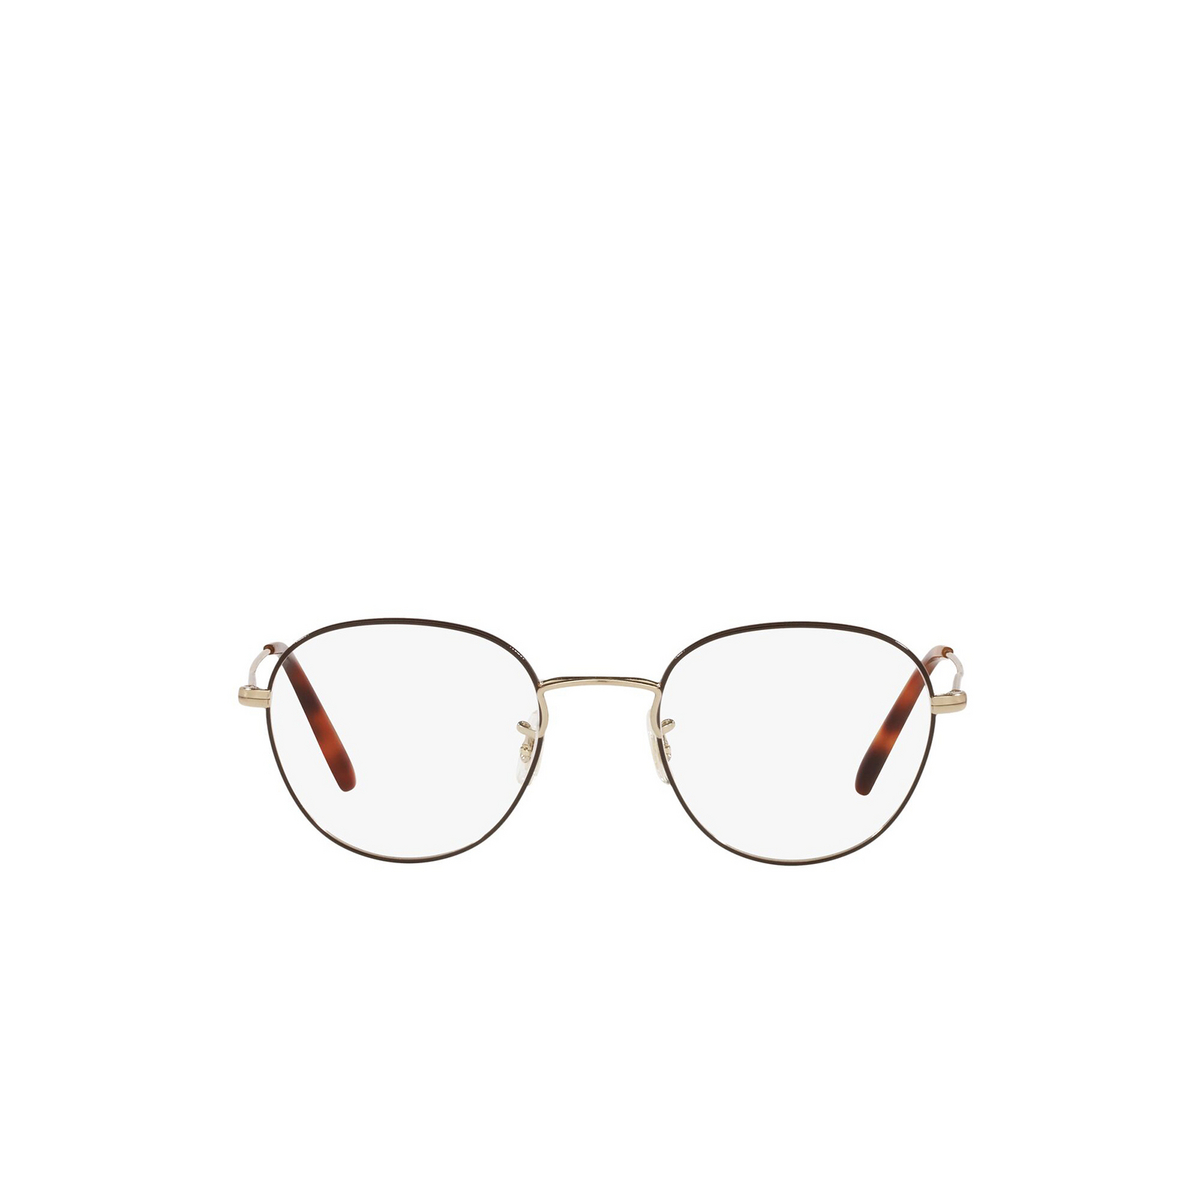 Oliver Peoples® Round Eyeglasses: Piercy OV1281 color Brushed Gold / Tortoise 5316 - front view.